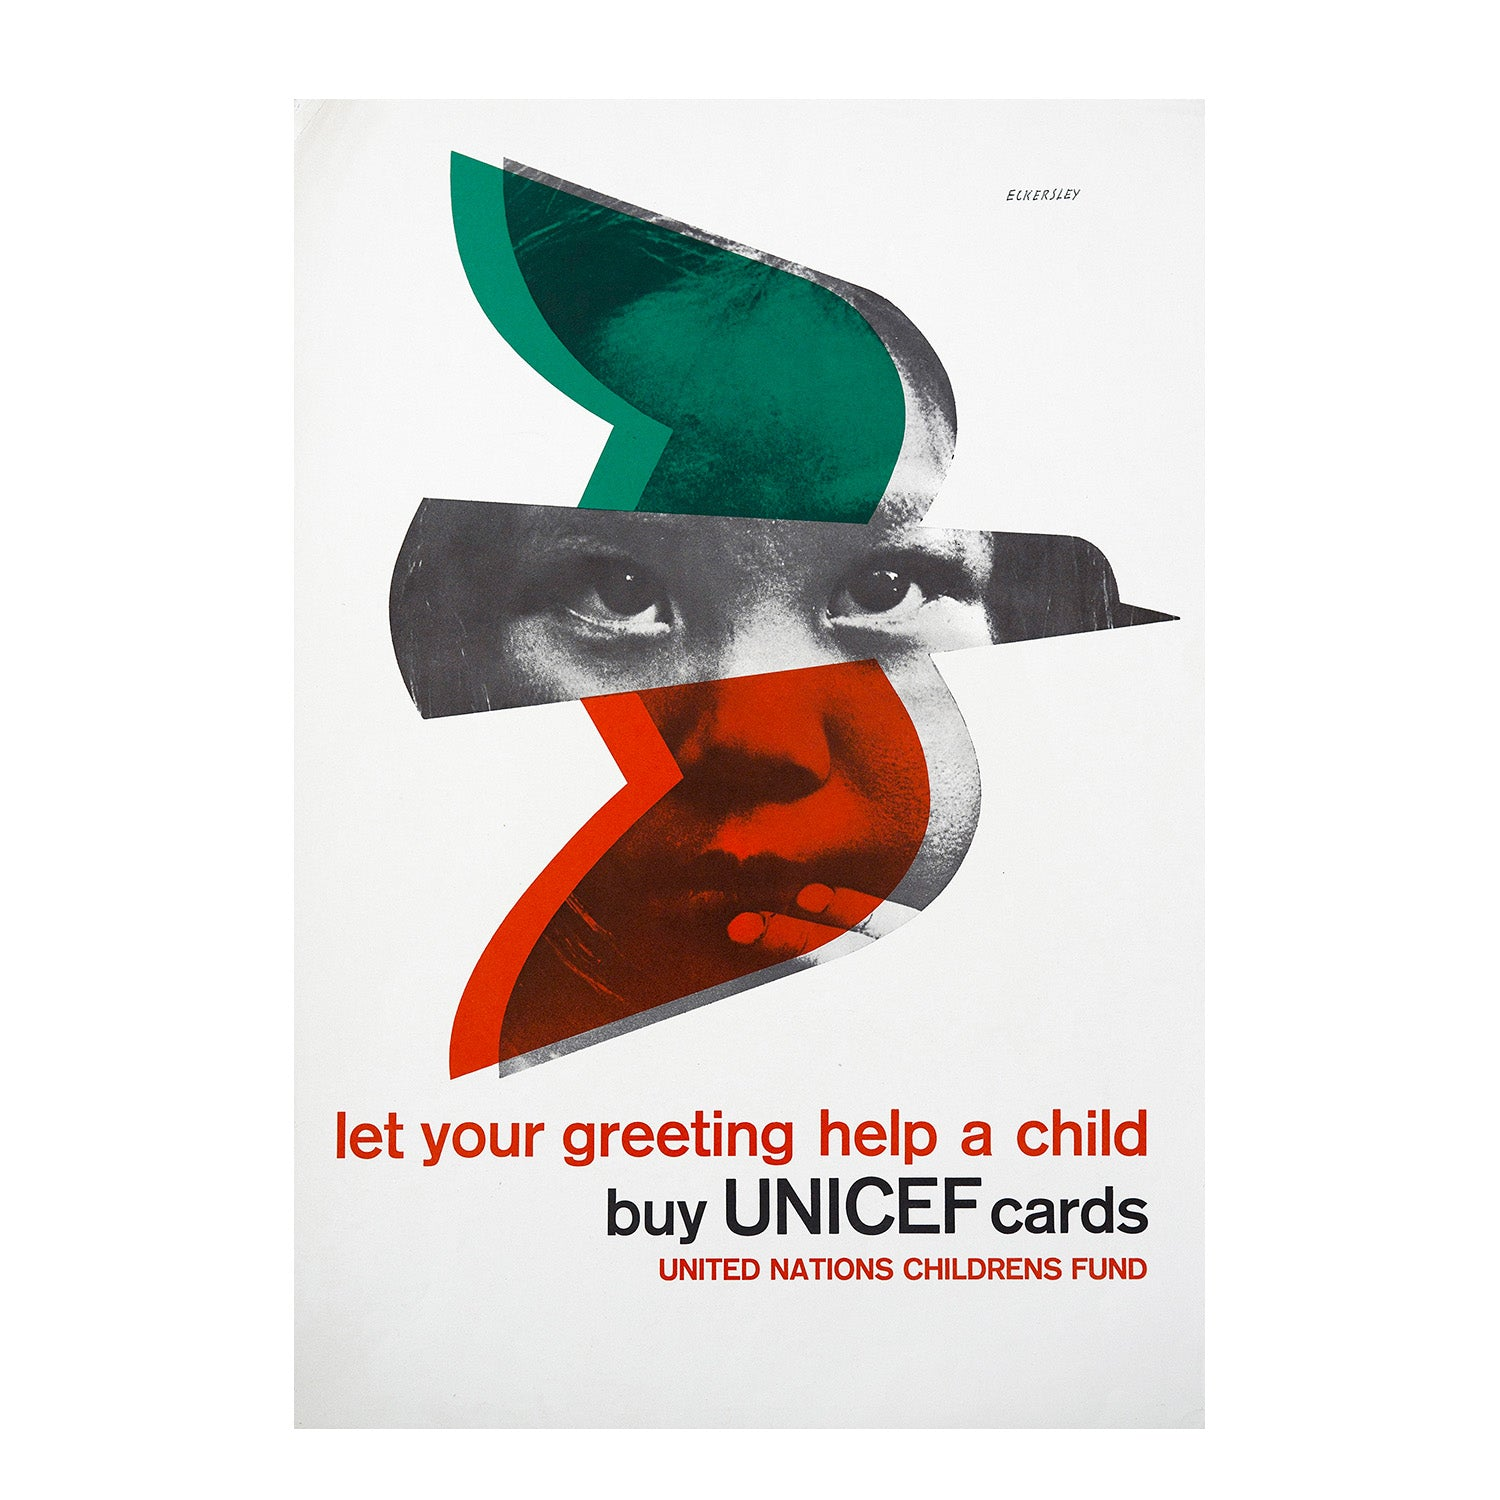 Let your greeting help a child. Buy UNICEF cards